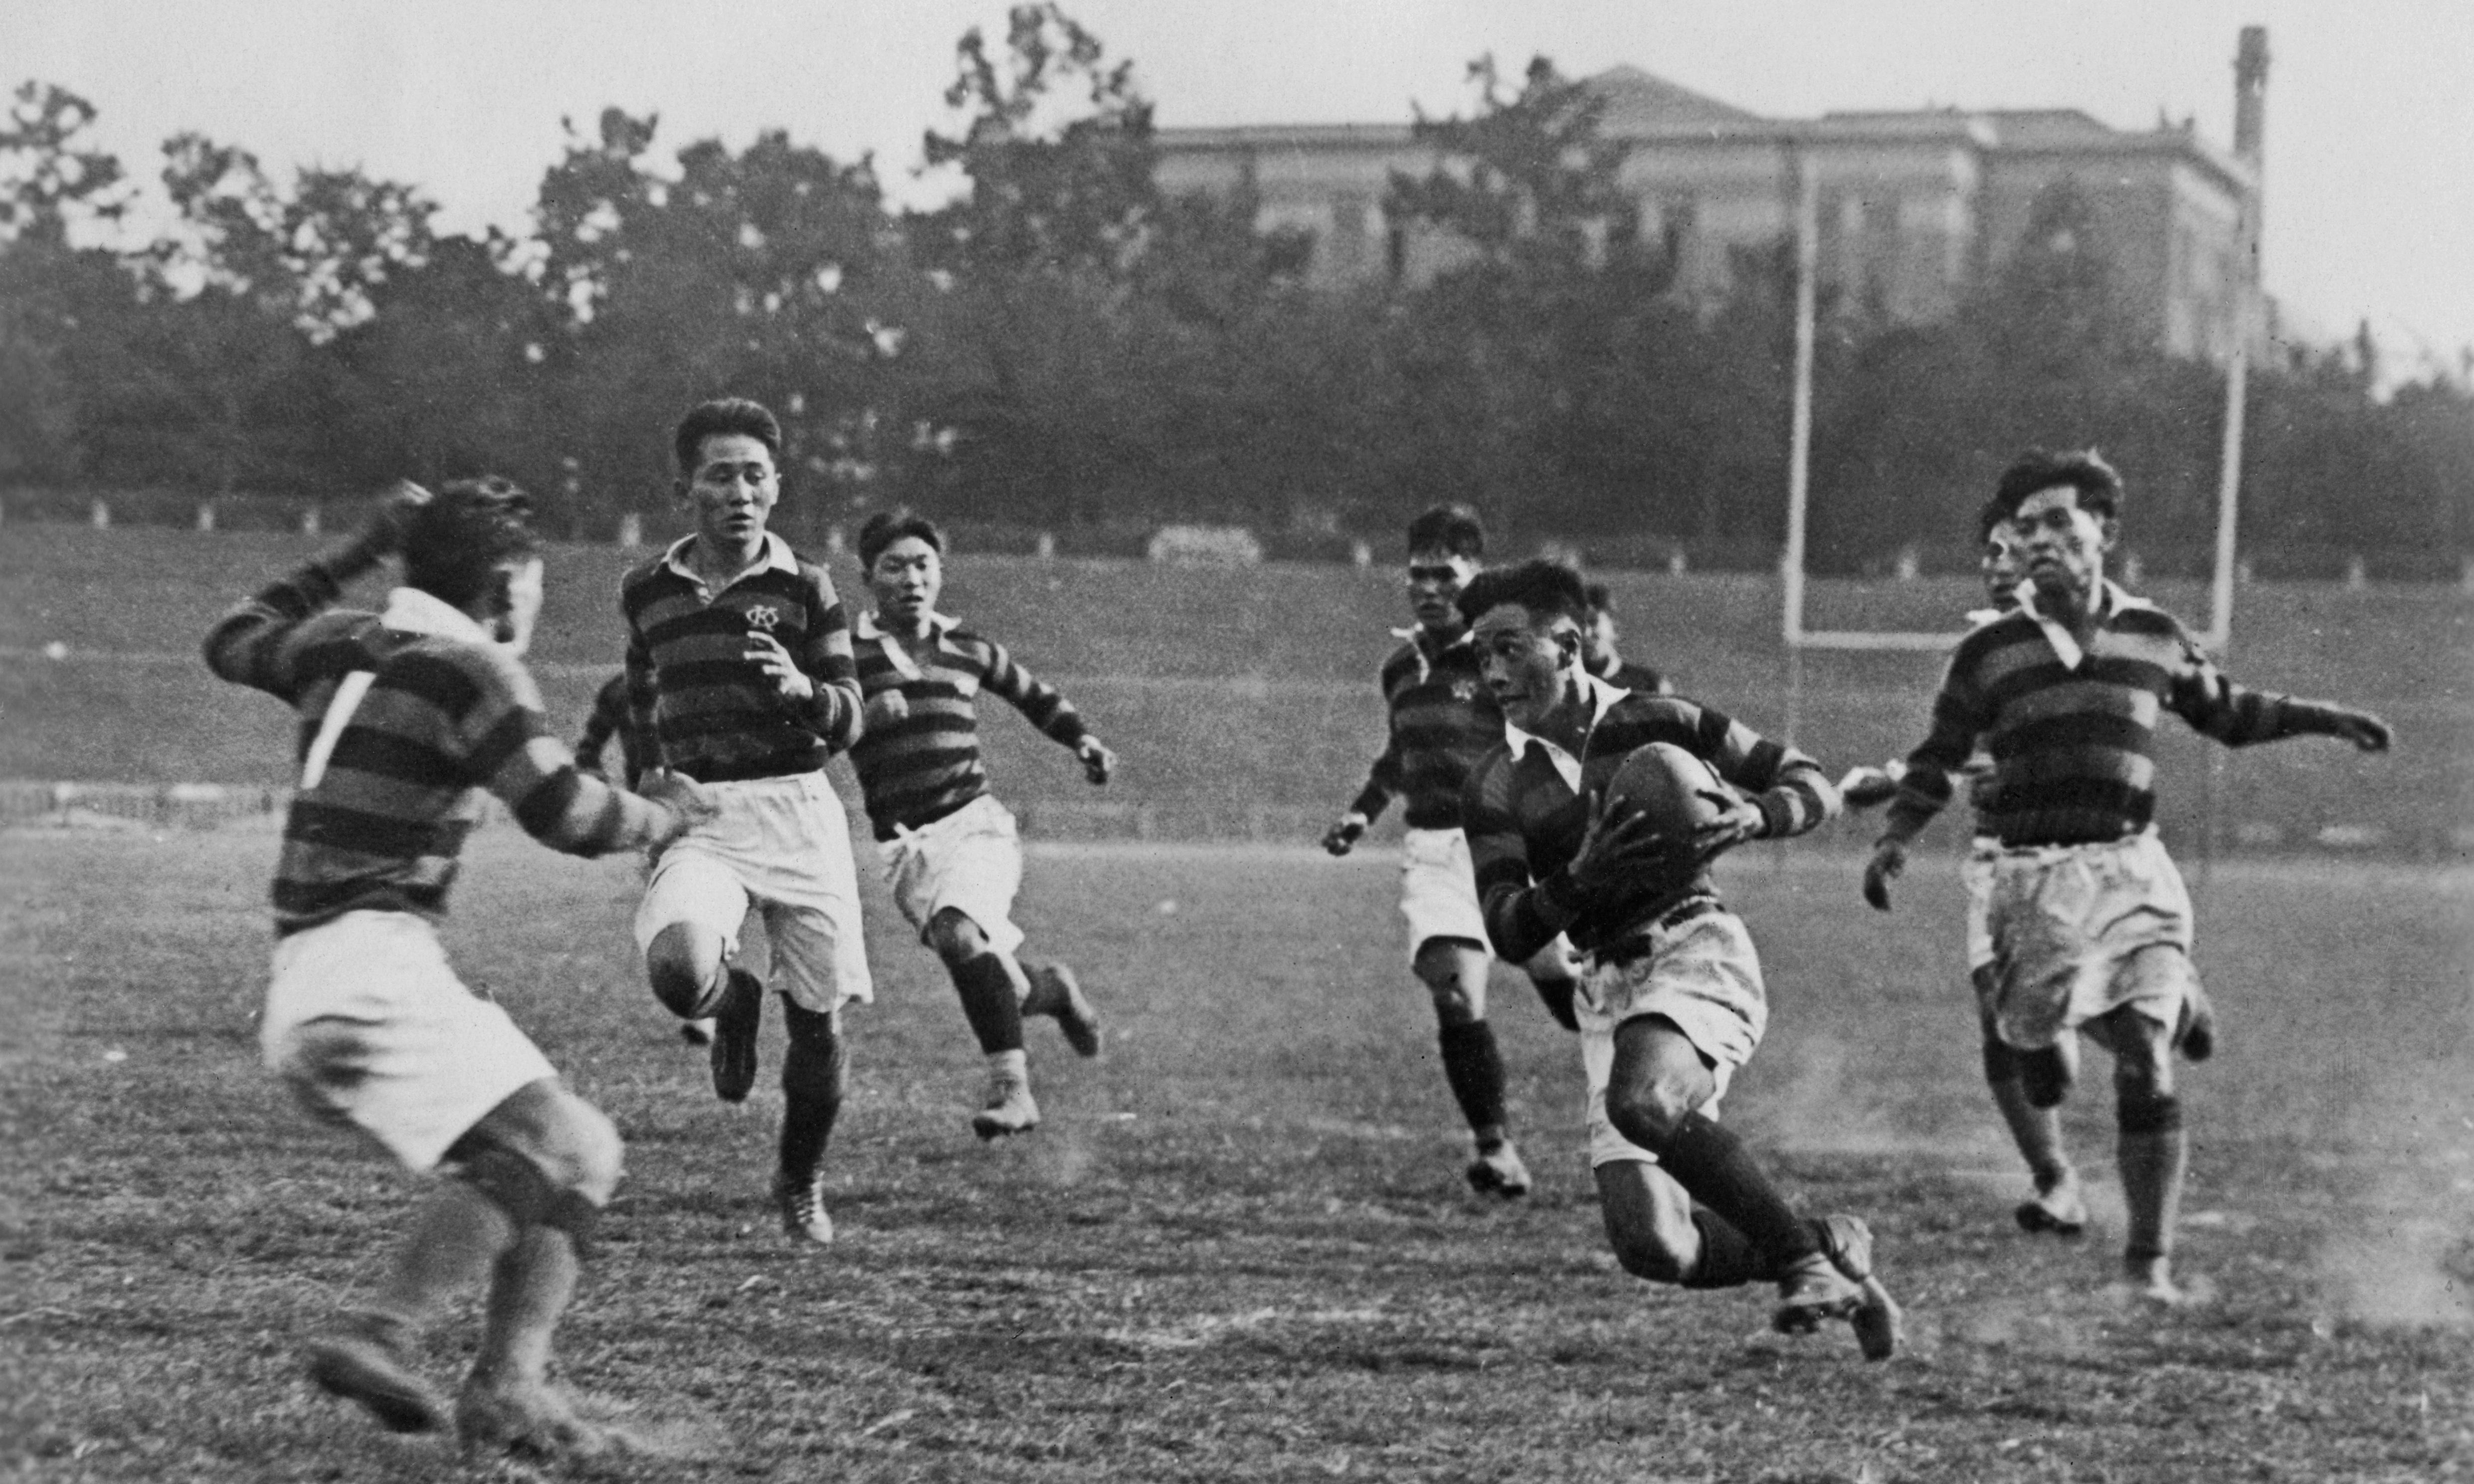 History makers: the origins of Japan's 150-year love affair with rugby